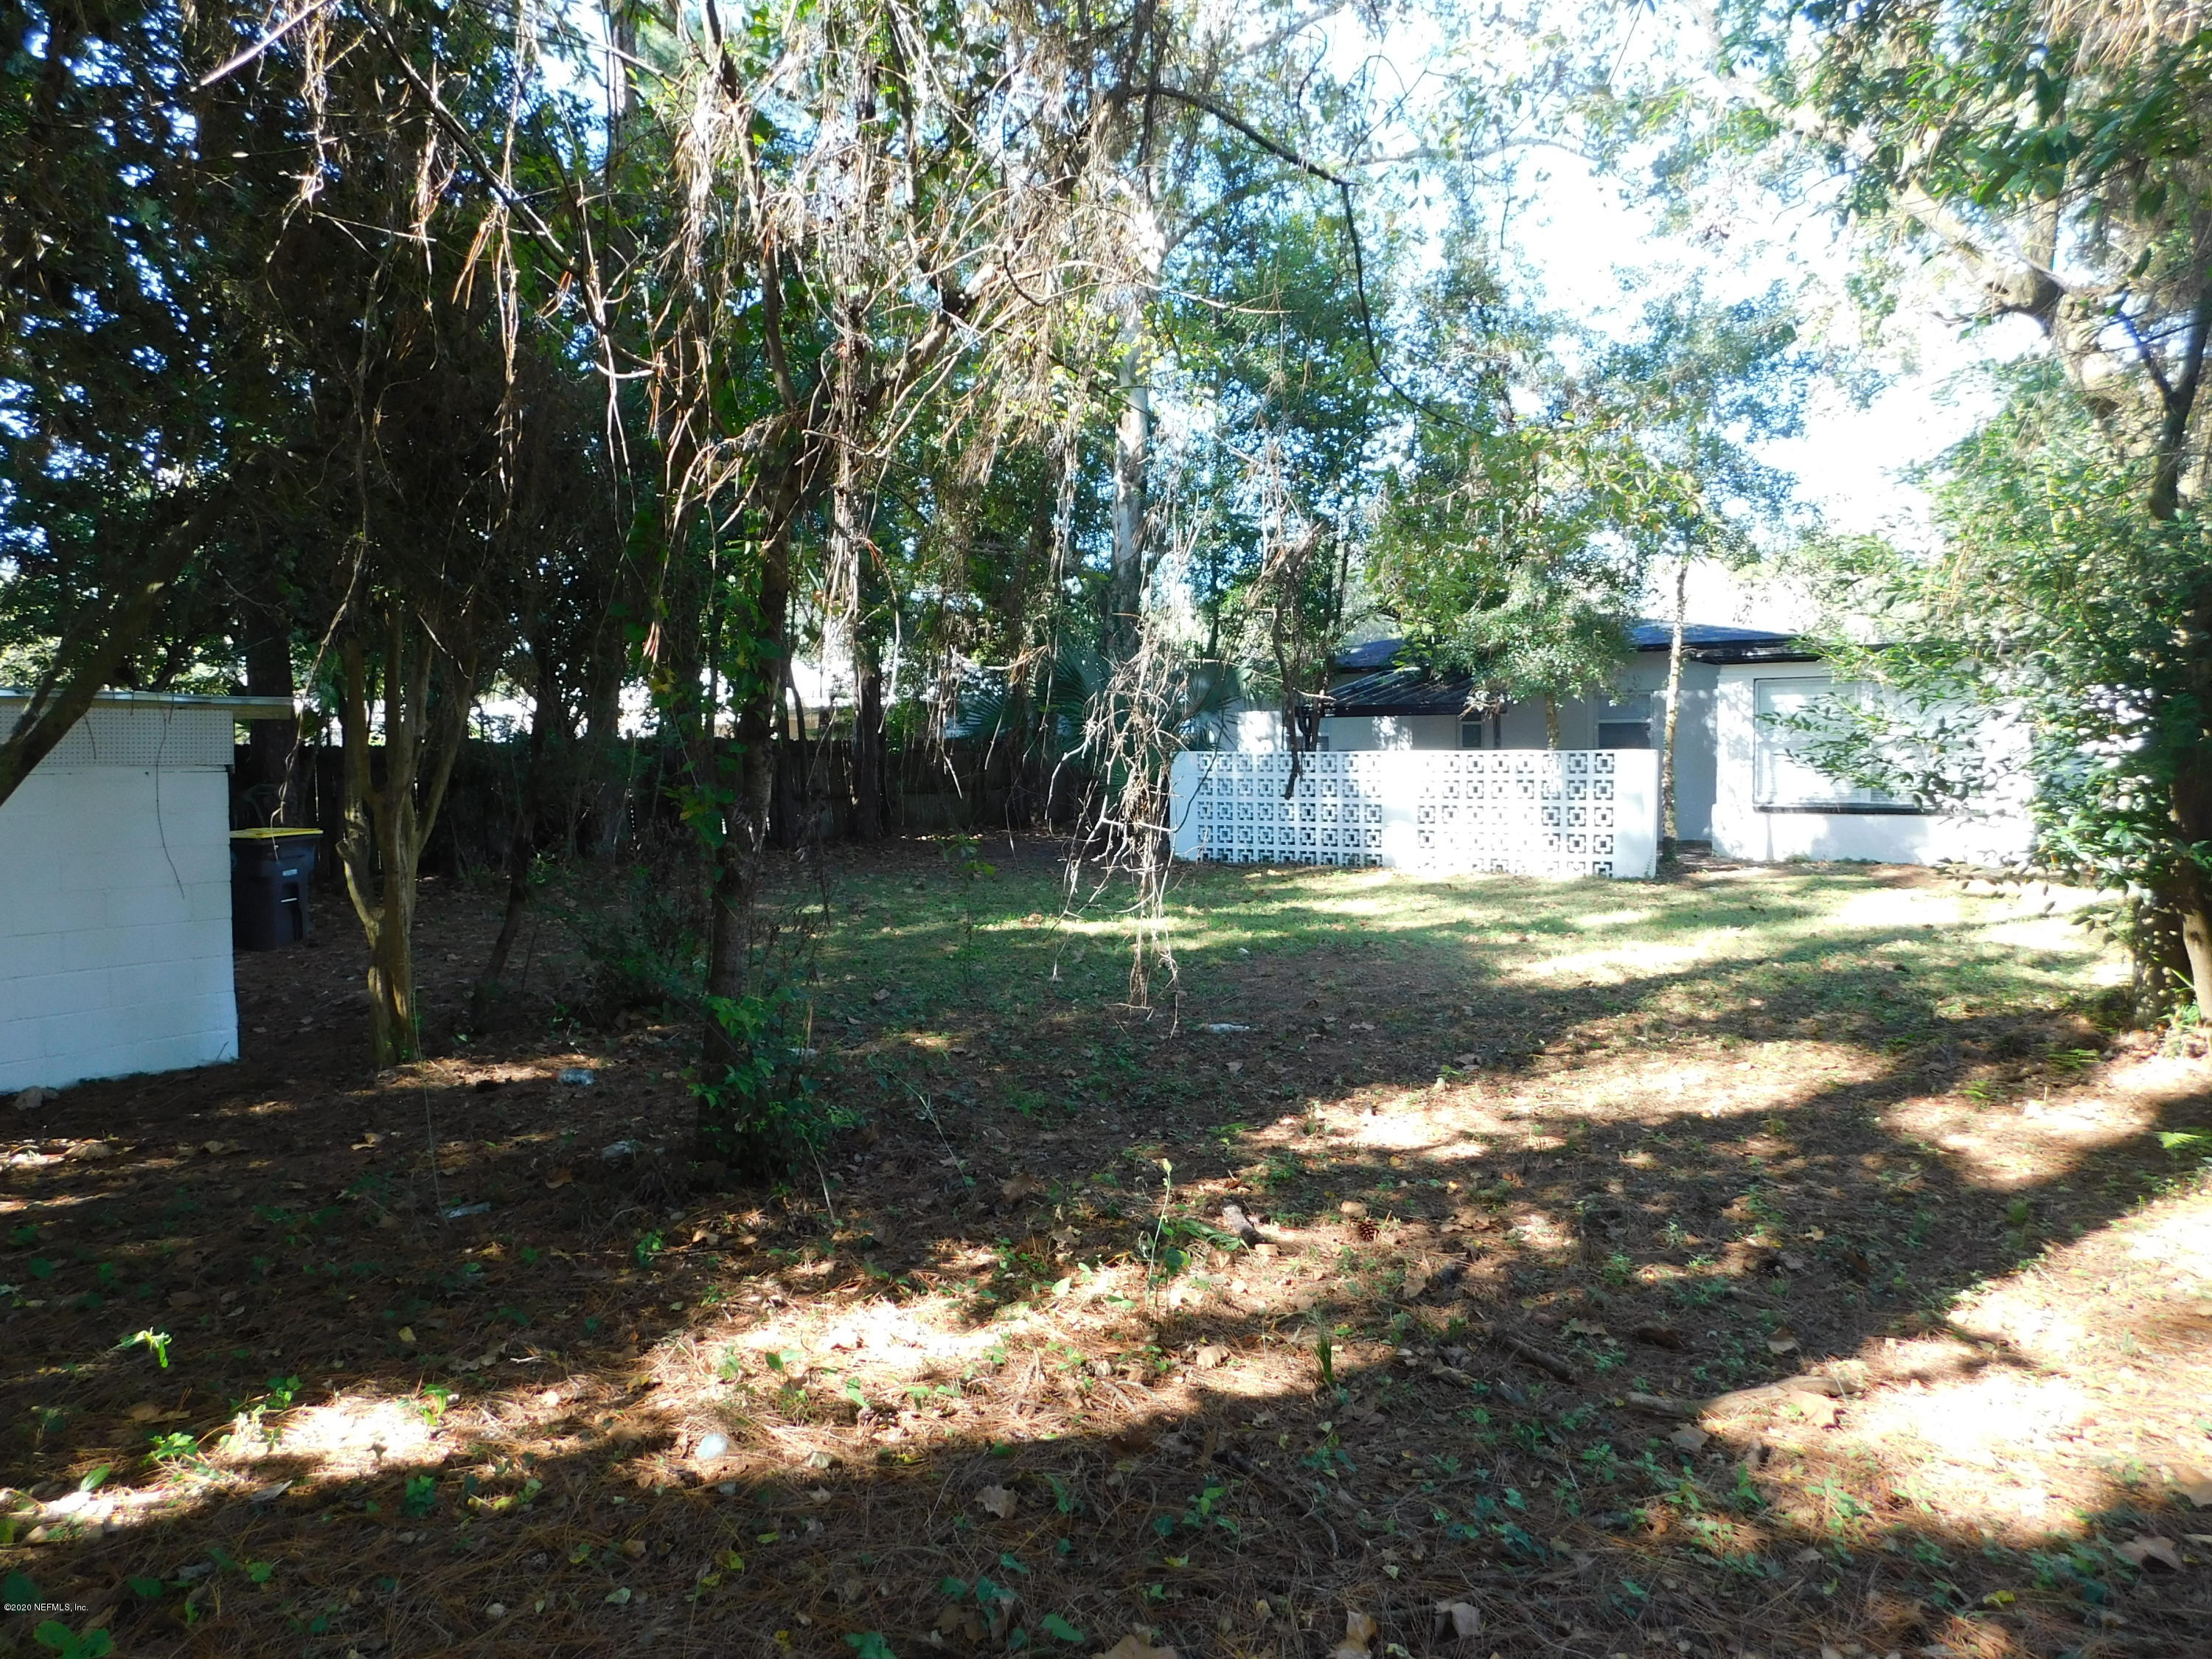 5130 MARLENE, JACKSONVILLE, FLORIDA 32210, 3 Bedrooms Bedrooms, ,1 BathroomBathrooms,Residential,For sale,MARLENE,1081204